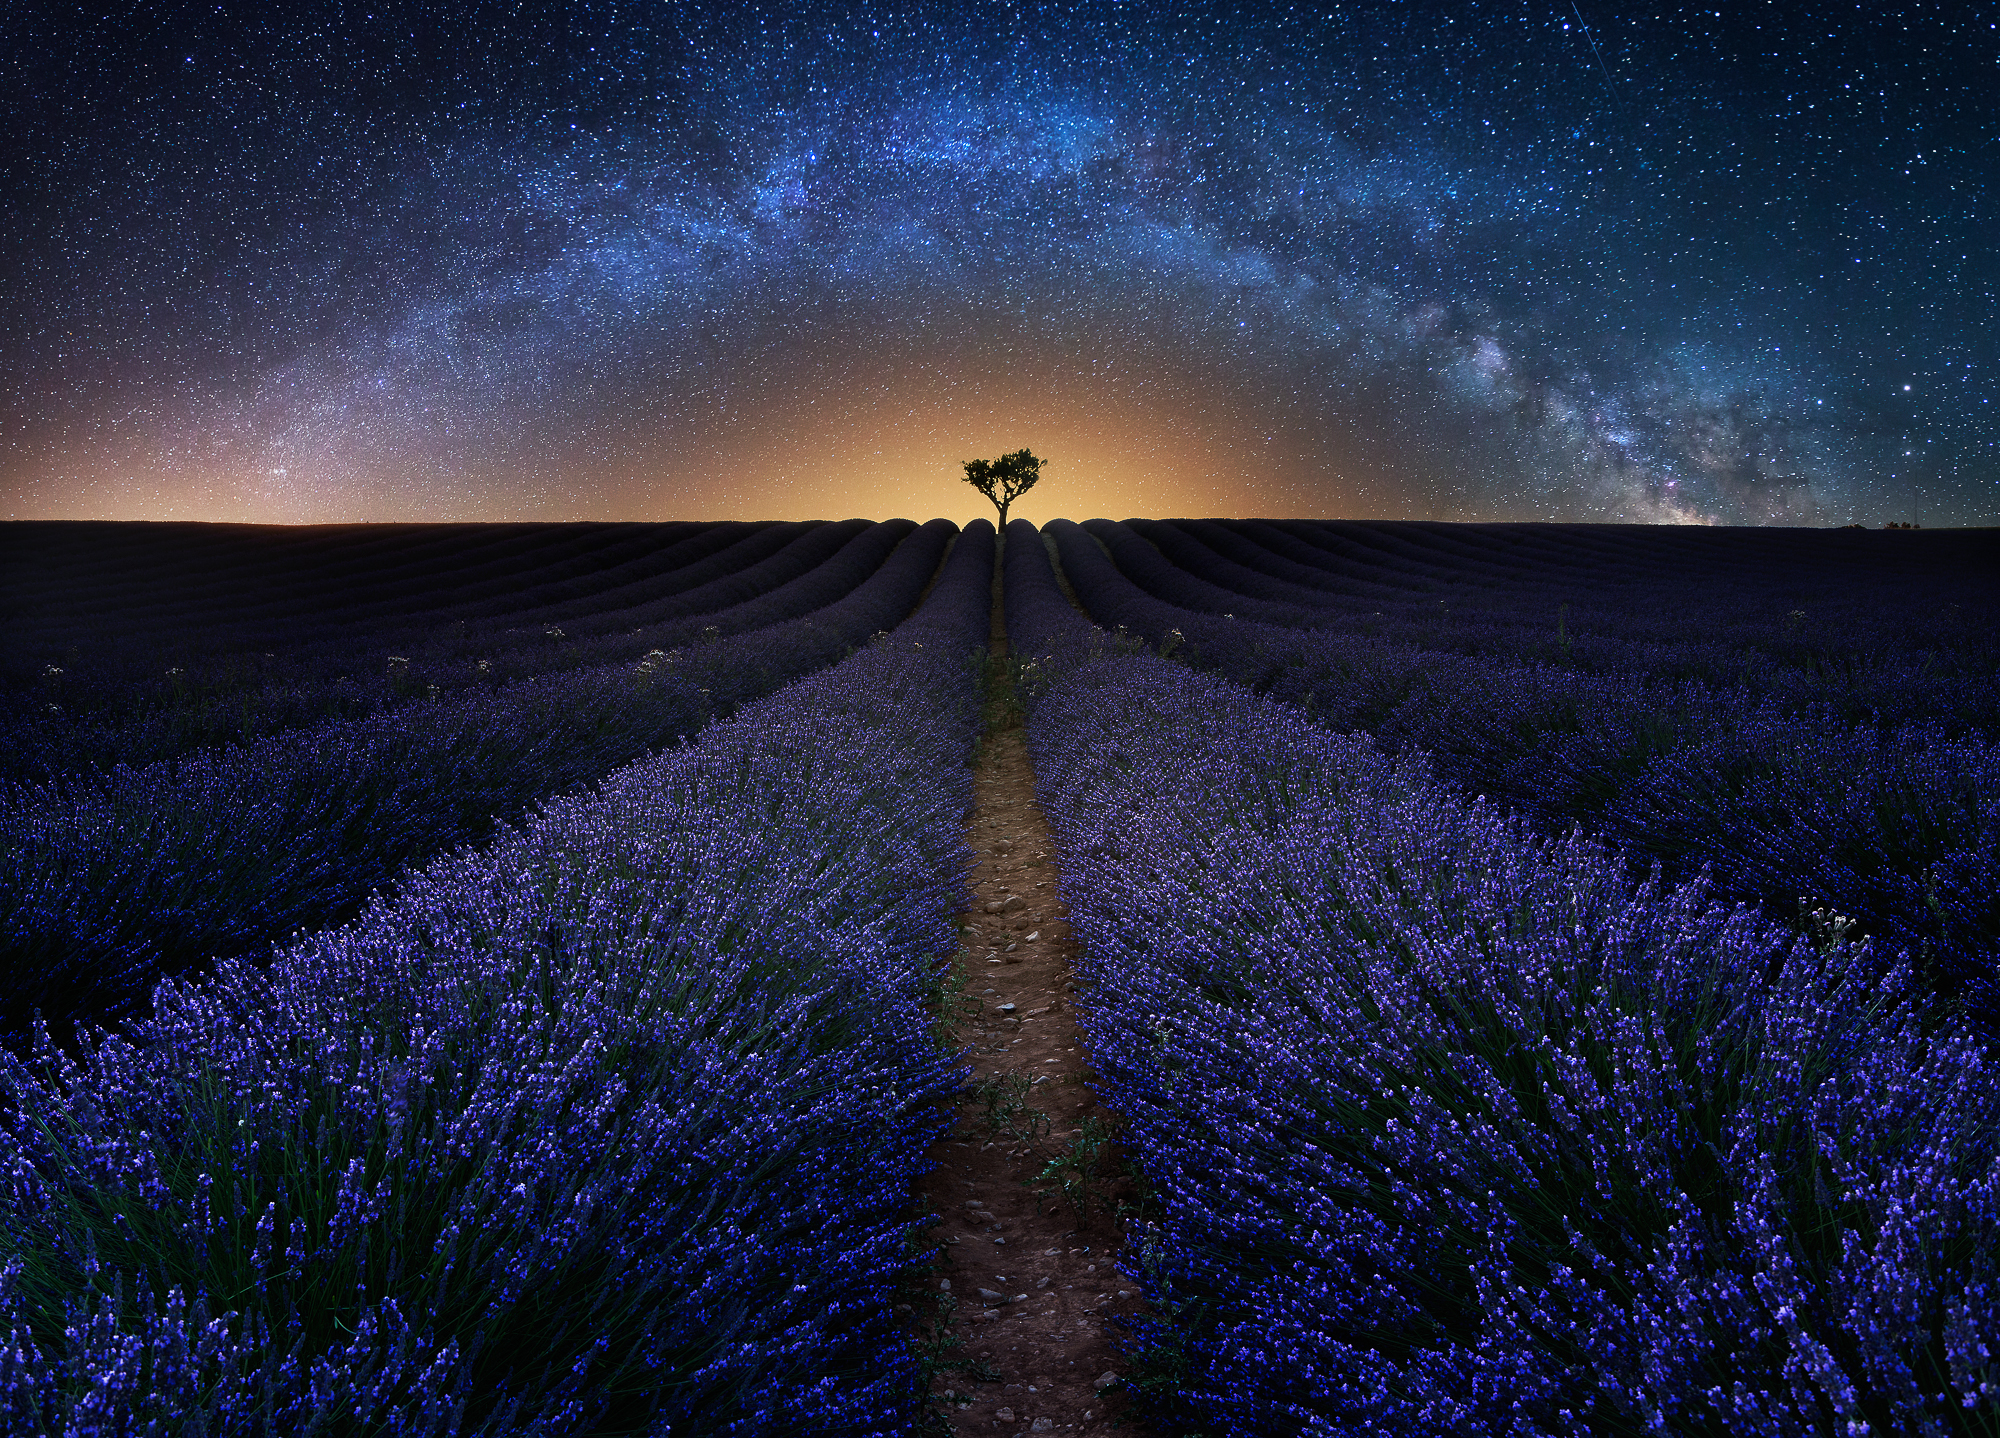 Valensole-Lavendar-Milkyway-France